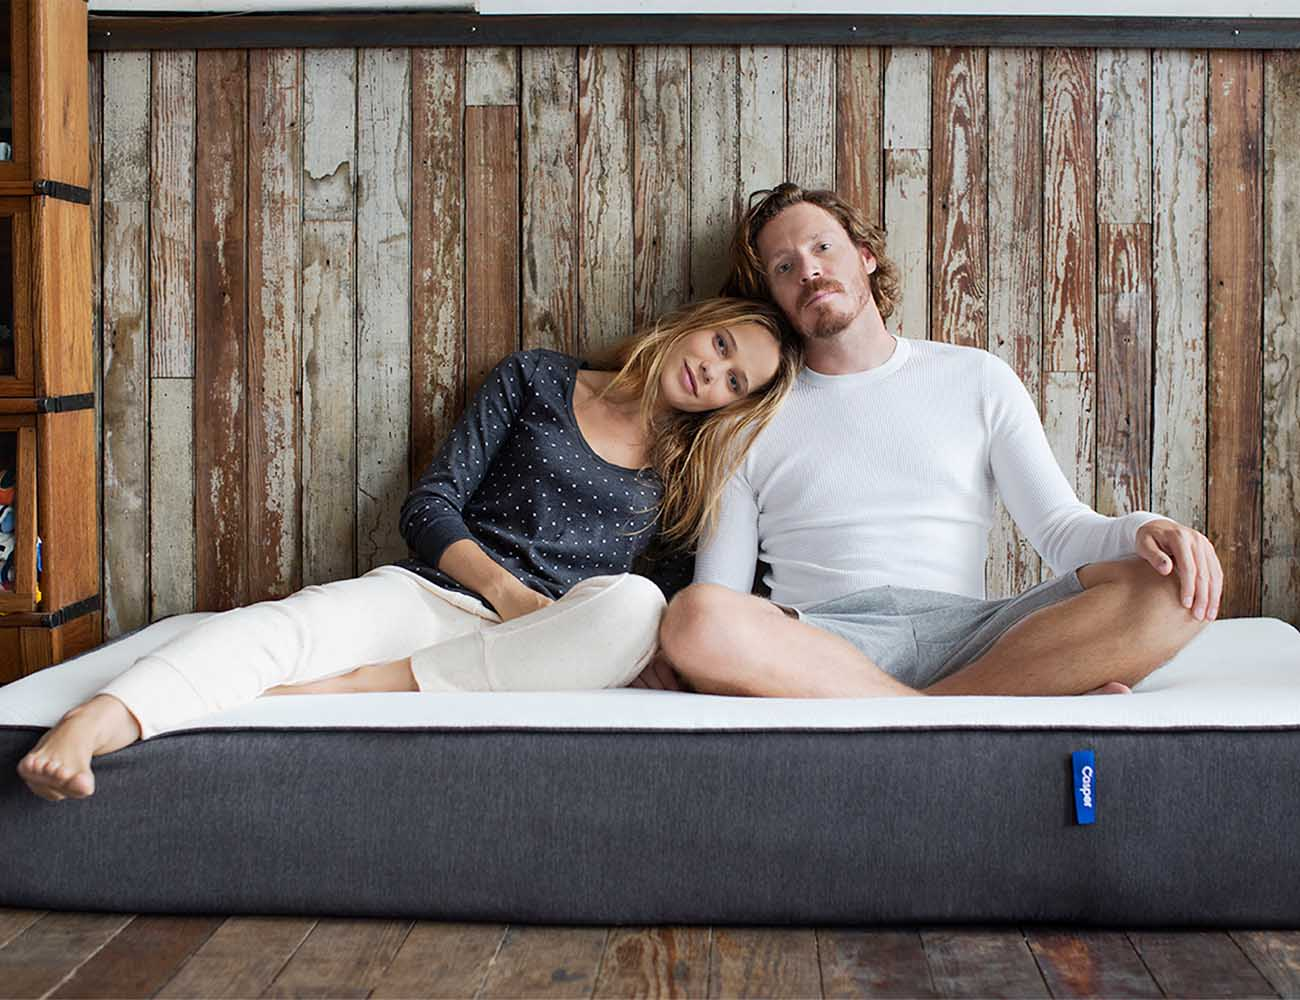 Casper Original Mattress Contouring Mattress keeps you cool and supported while you sleep